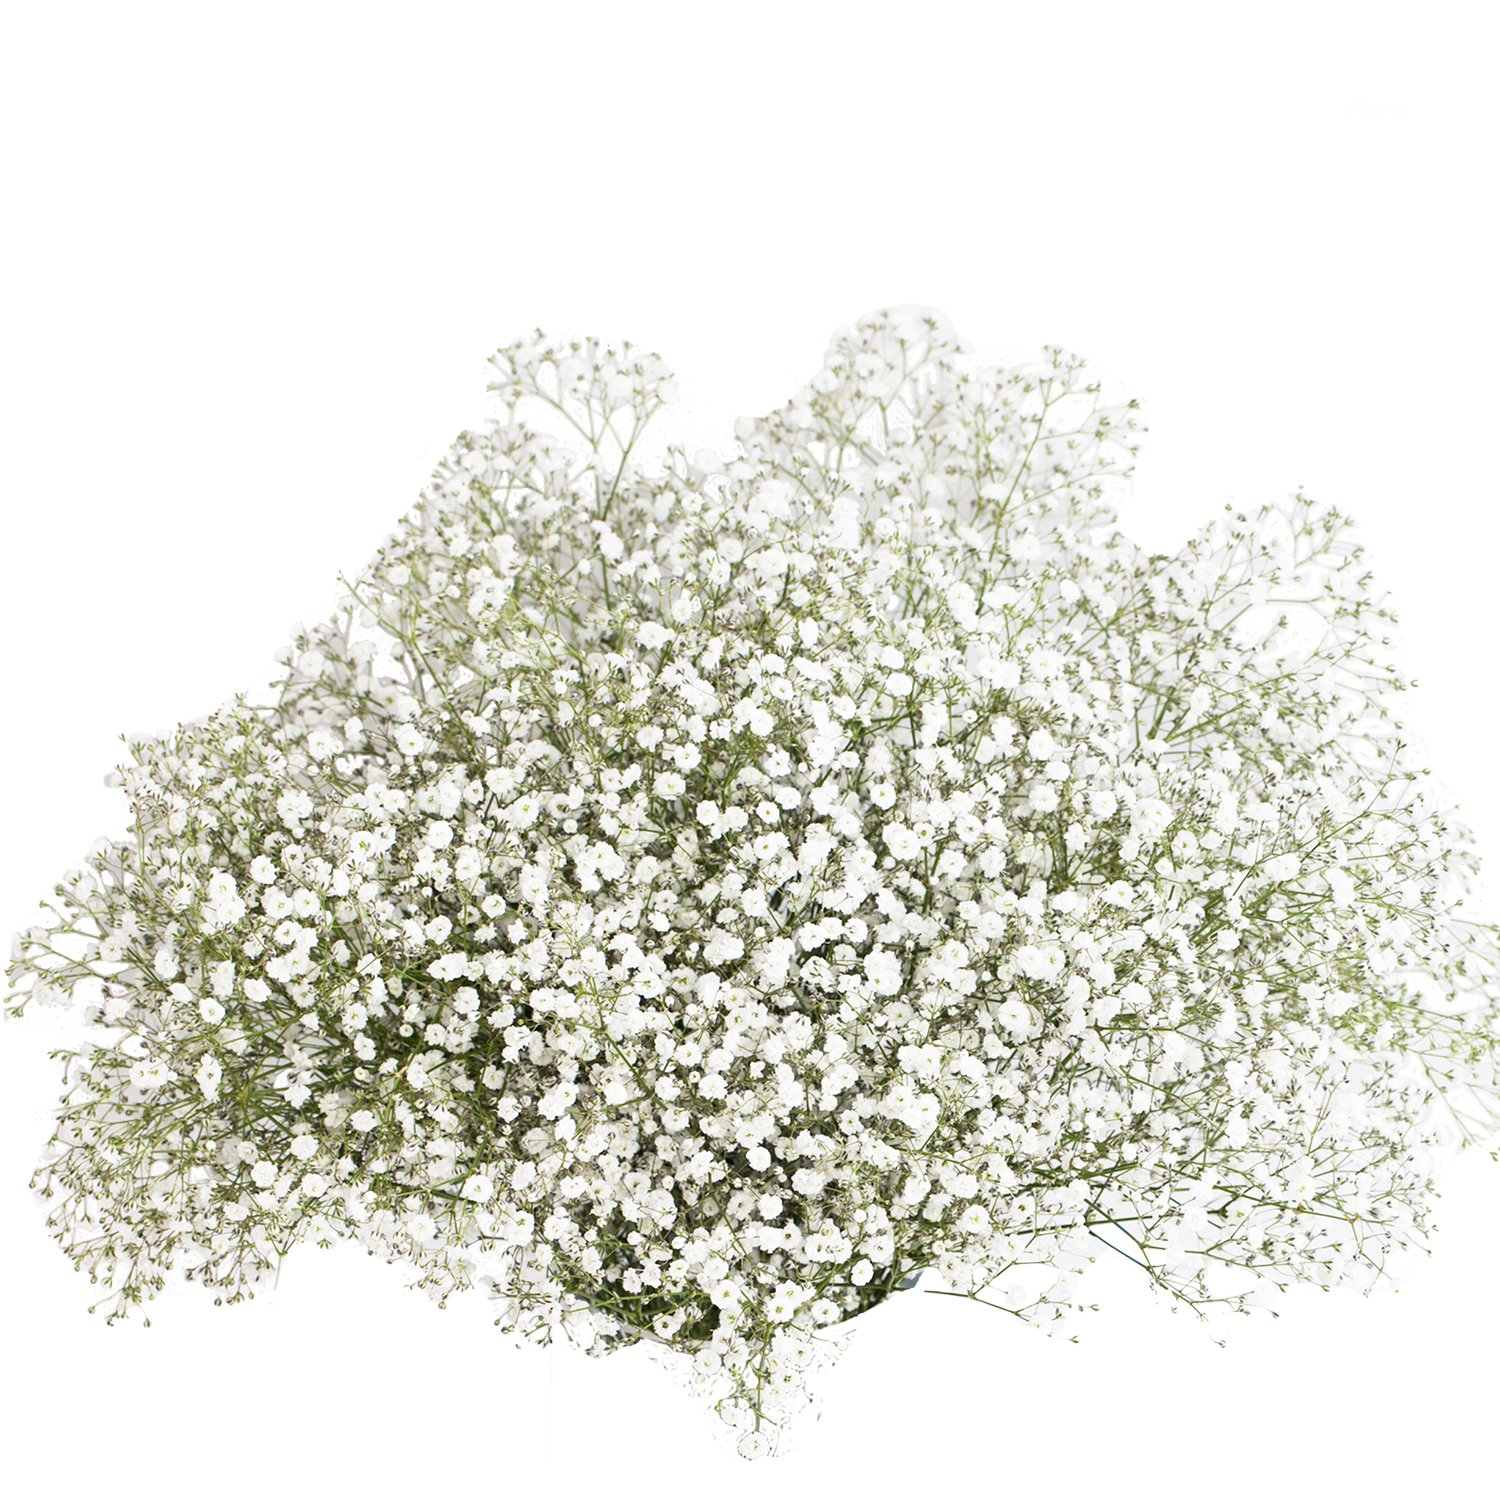 GlobalRose 120 Stems of Fresh Cut Gypso Perfecta Fillers - Baby's Breath Fillers - Fresh Flowers Wholesale Express Delivery Friday May 29